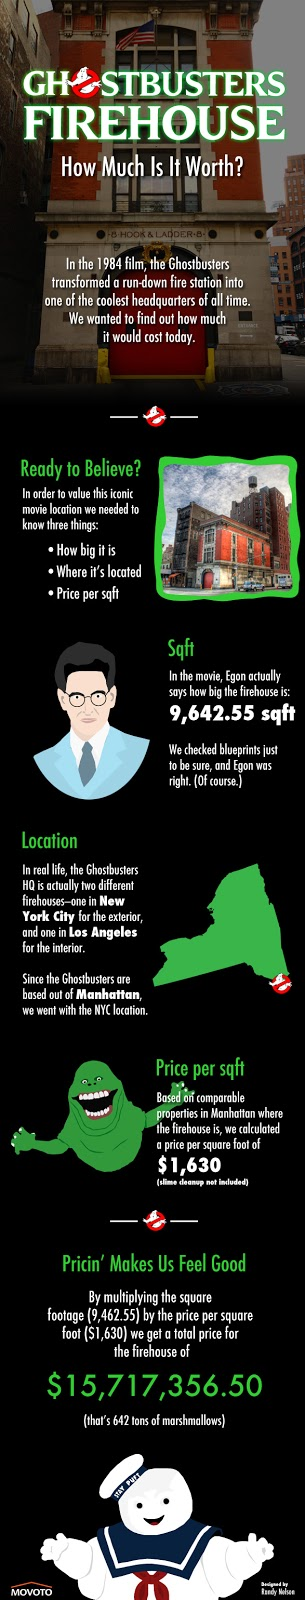 ghostbusters infographic